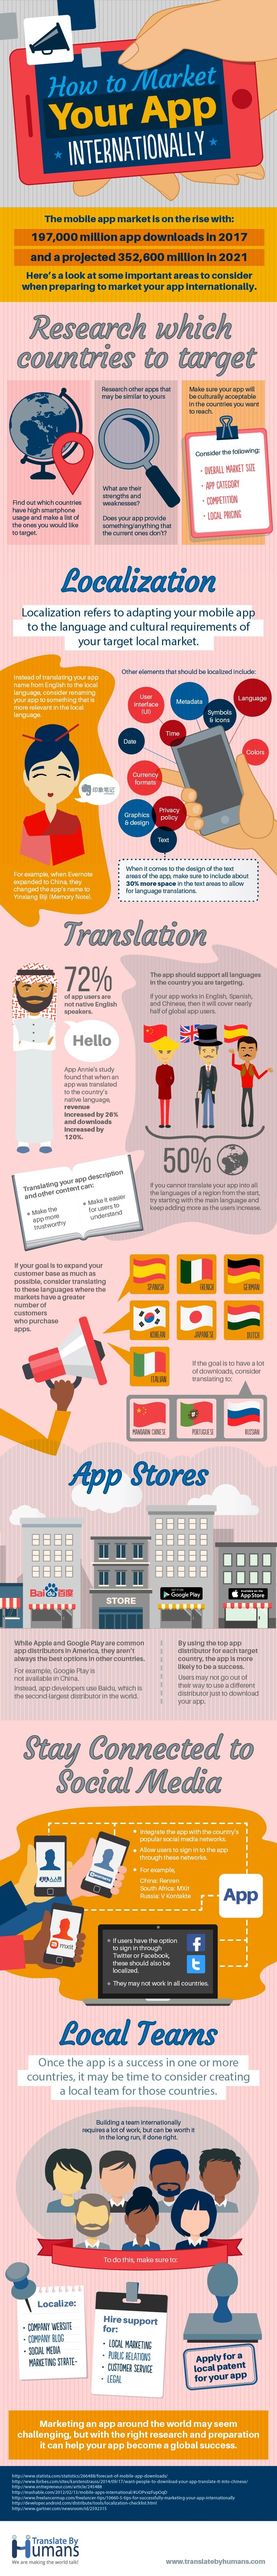 How to Market Your App Internationally #infographic